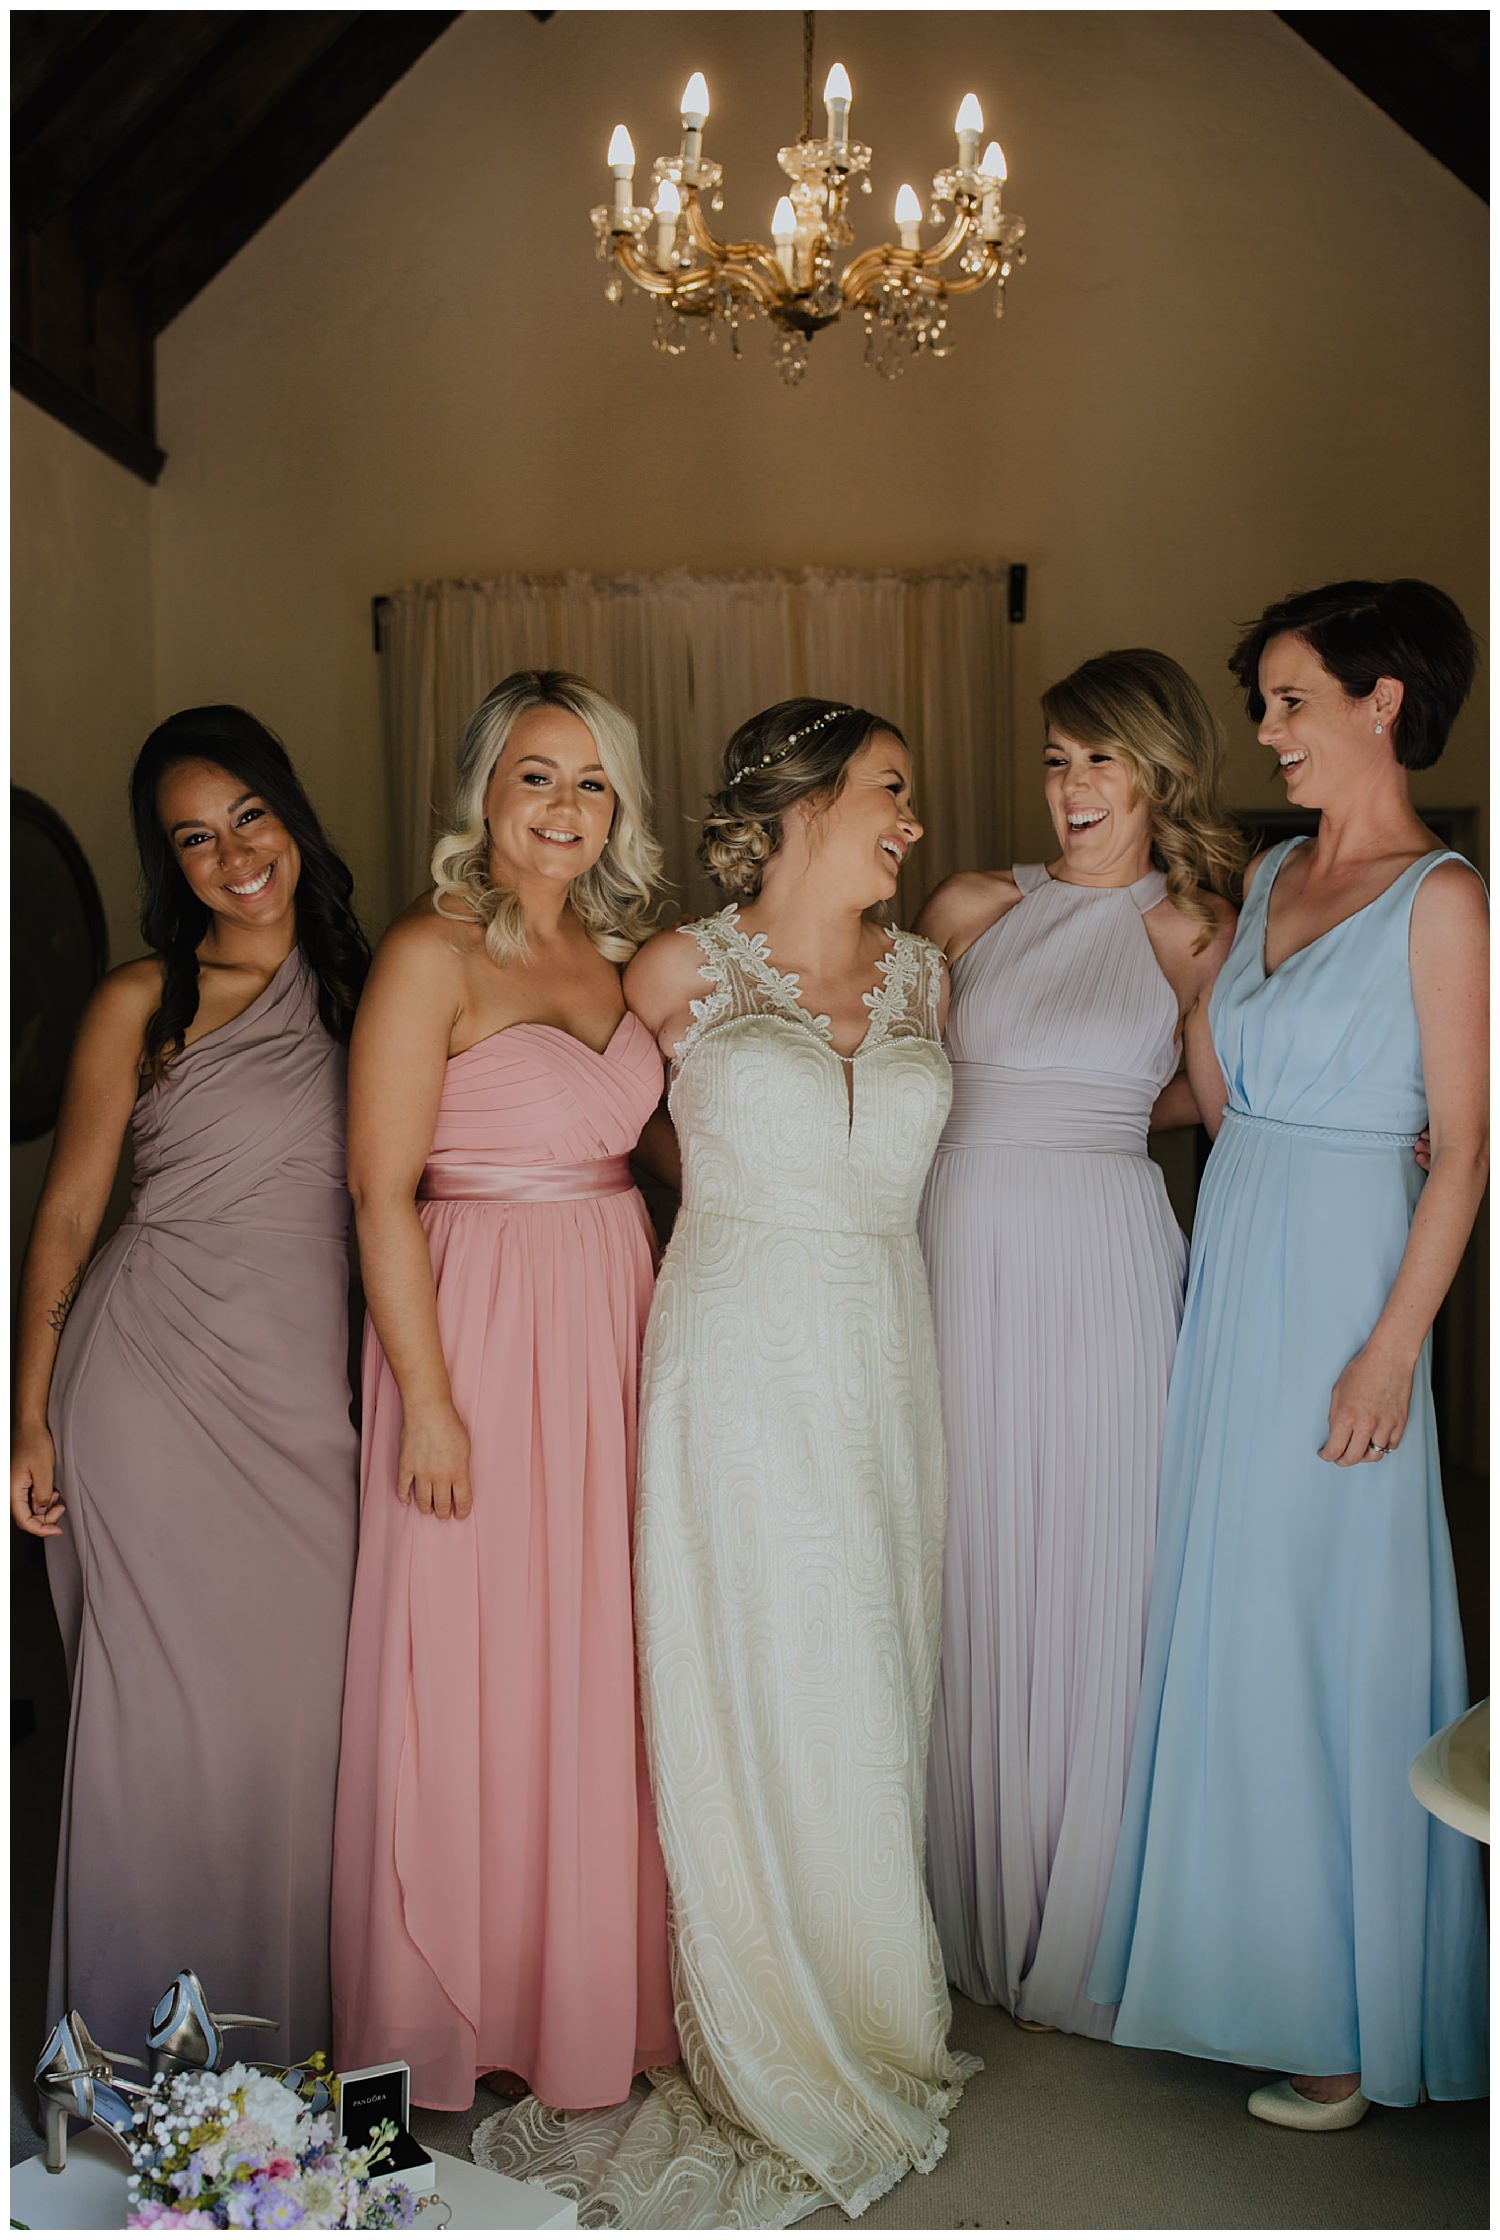 j&r_ballybeg_house_wedding_photographer_livia_figueiredo_155.jpg